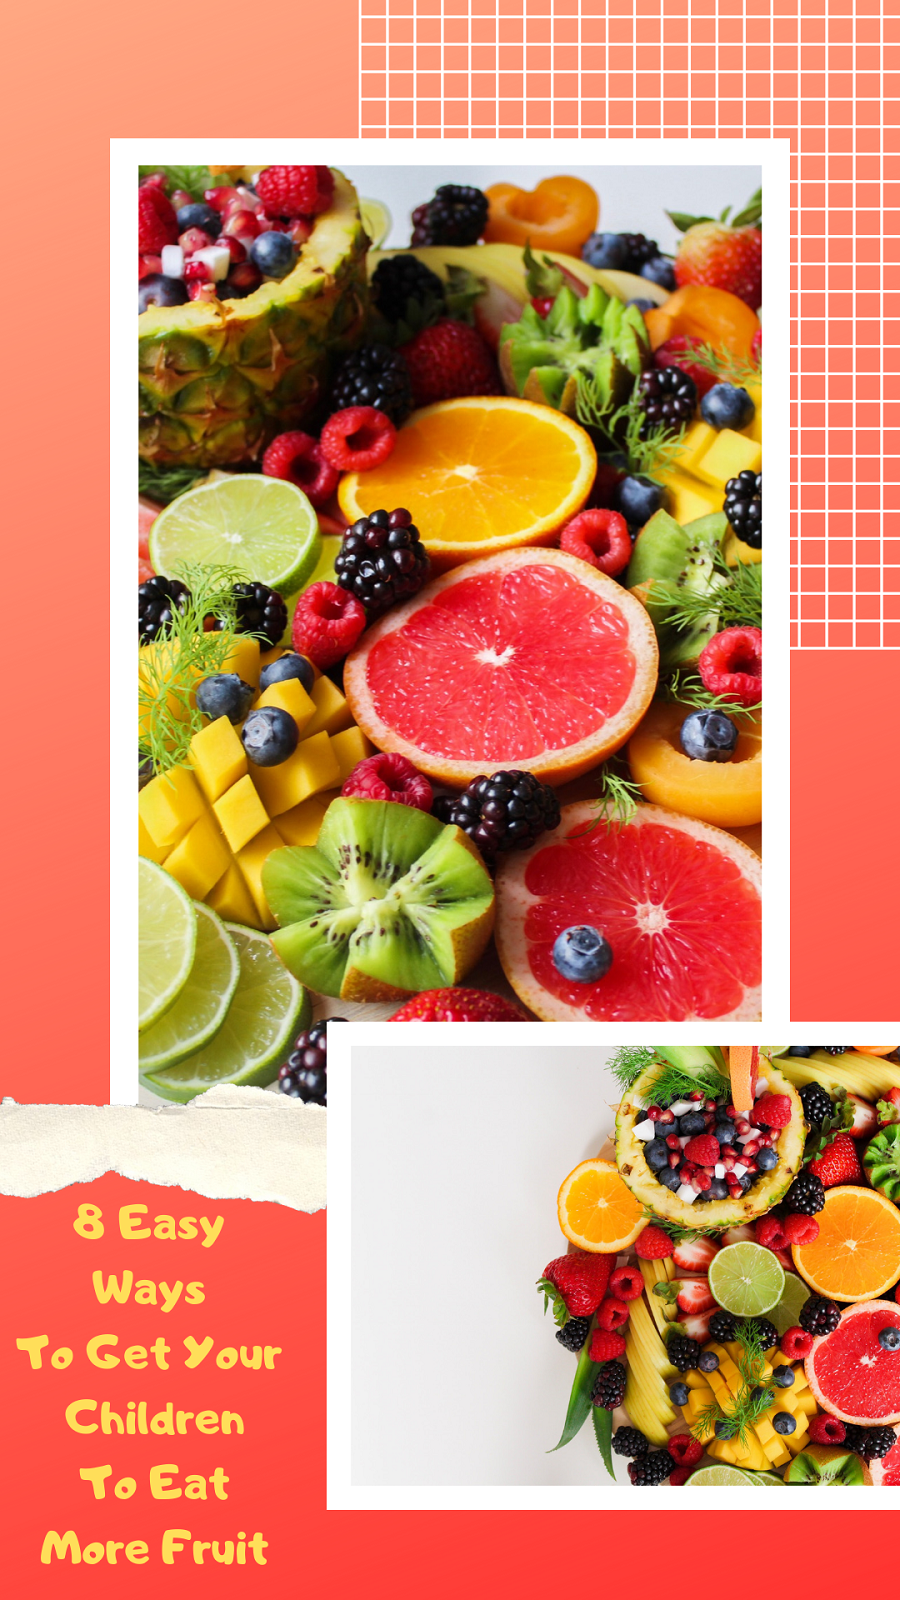 8 Easy Ways To Get Your Children To Eat More Fruit